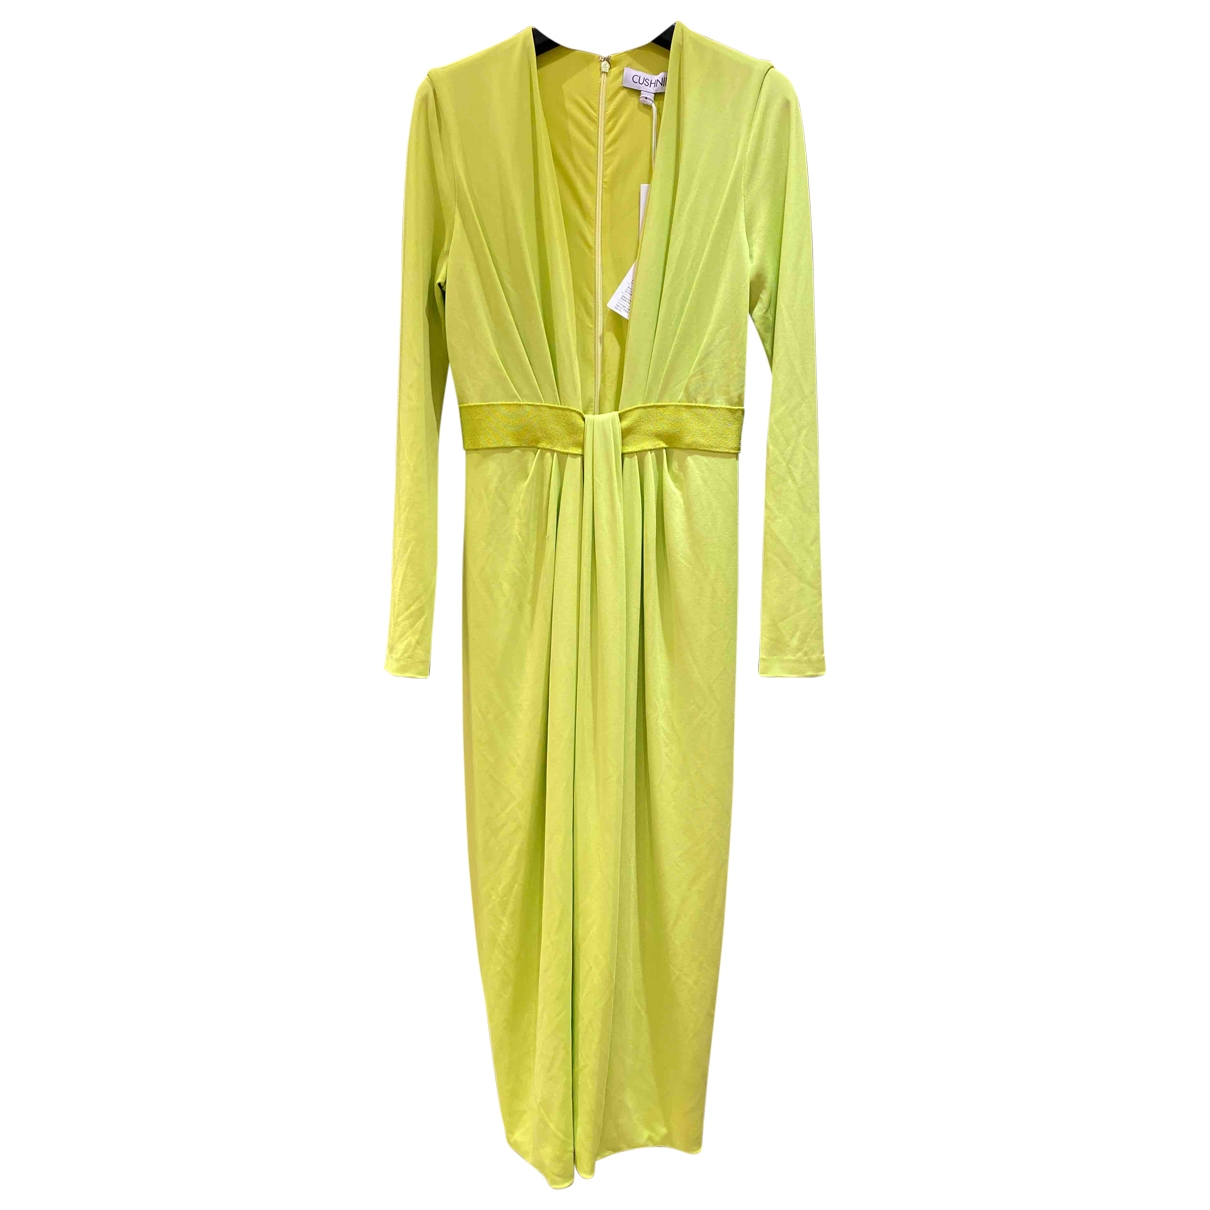 Cushnie Et Ochs \N Yellow dress for Women 4 US